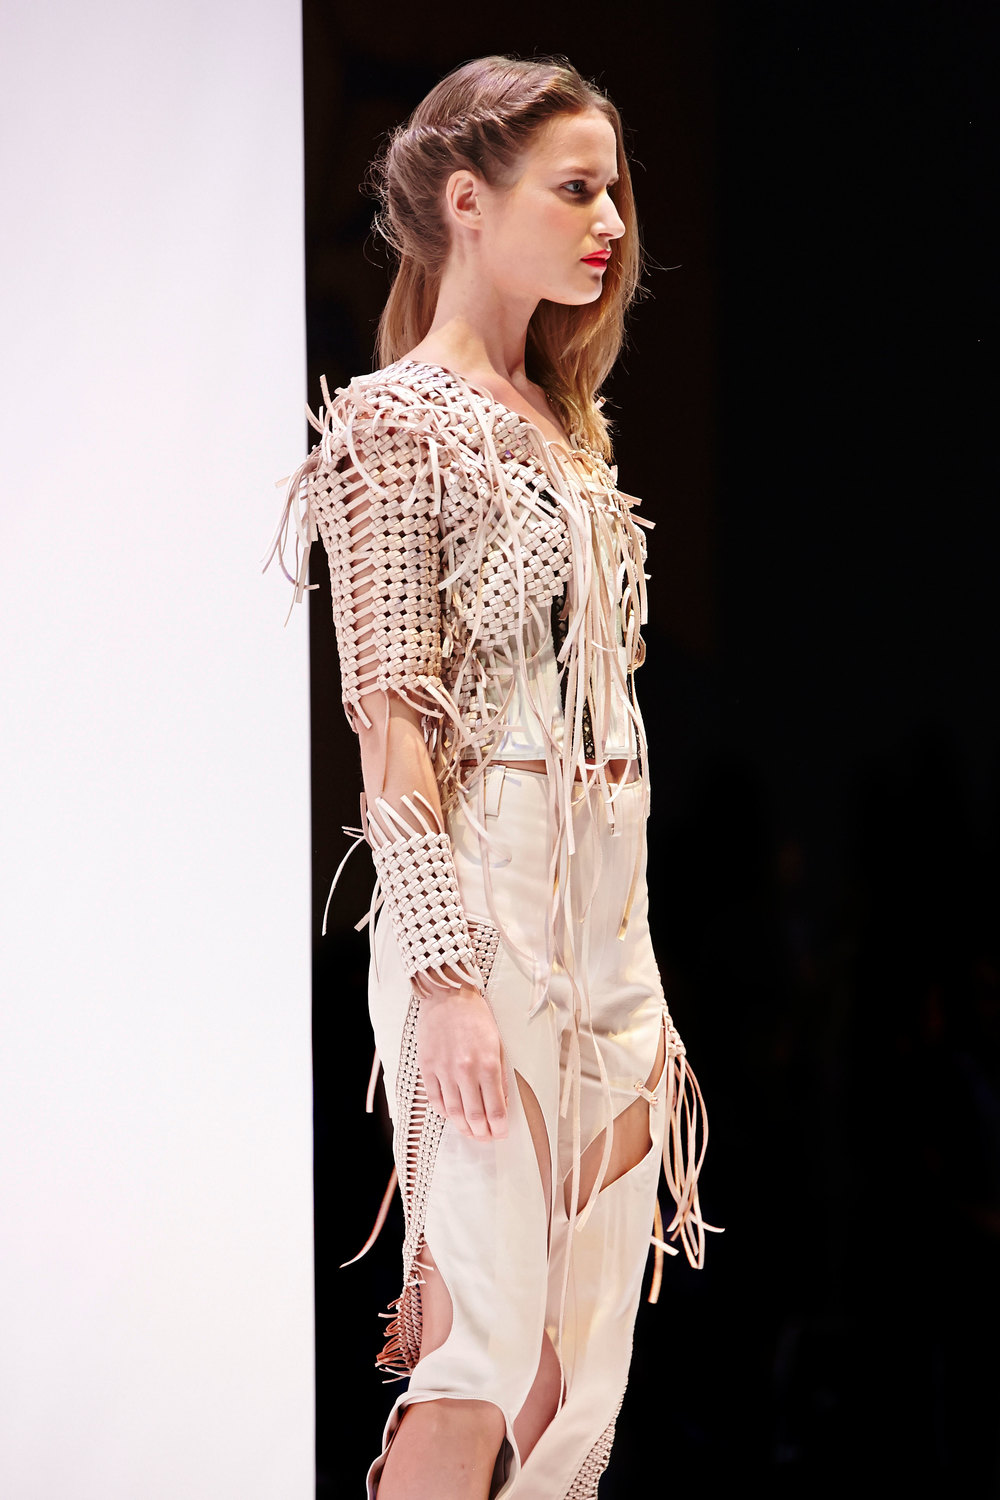 UTS-Fashion-Show-2014-Boris-Bresil-17.jpg